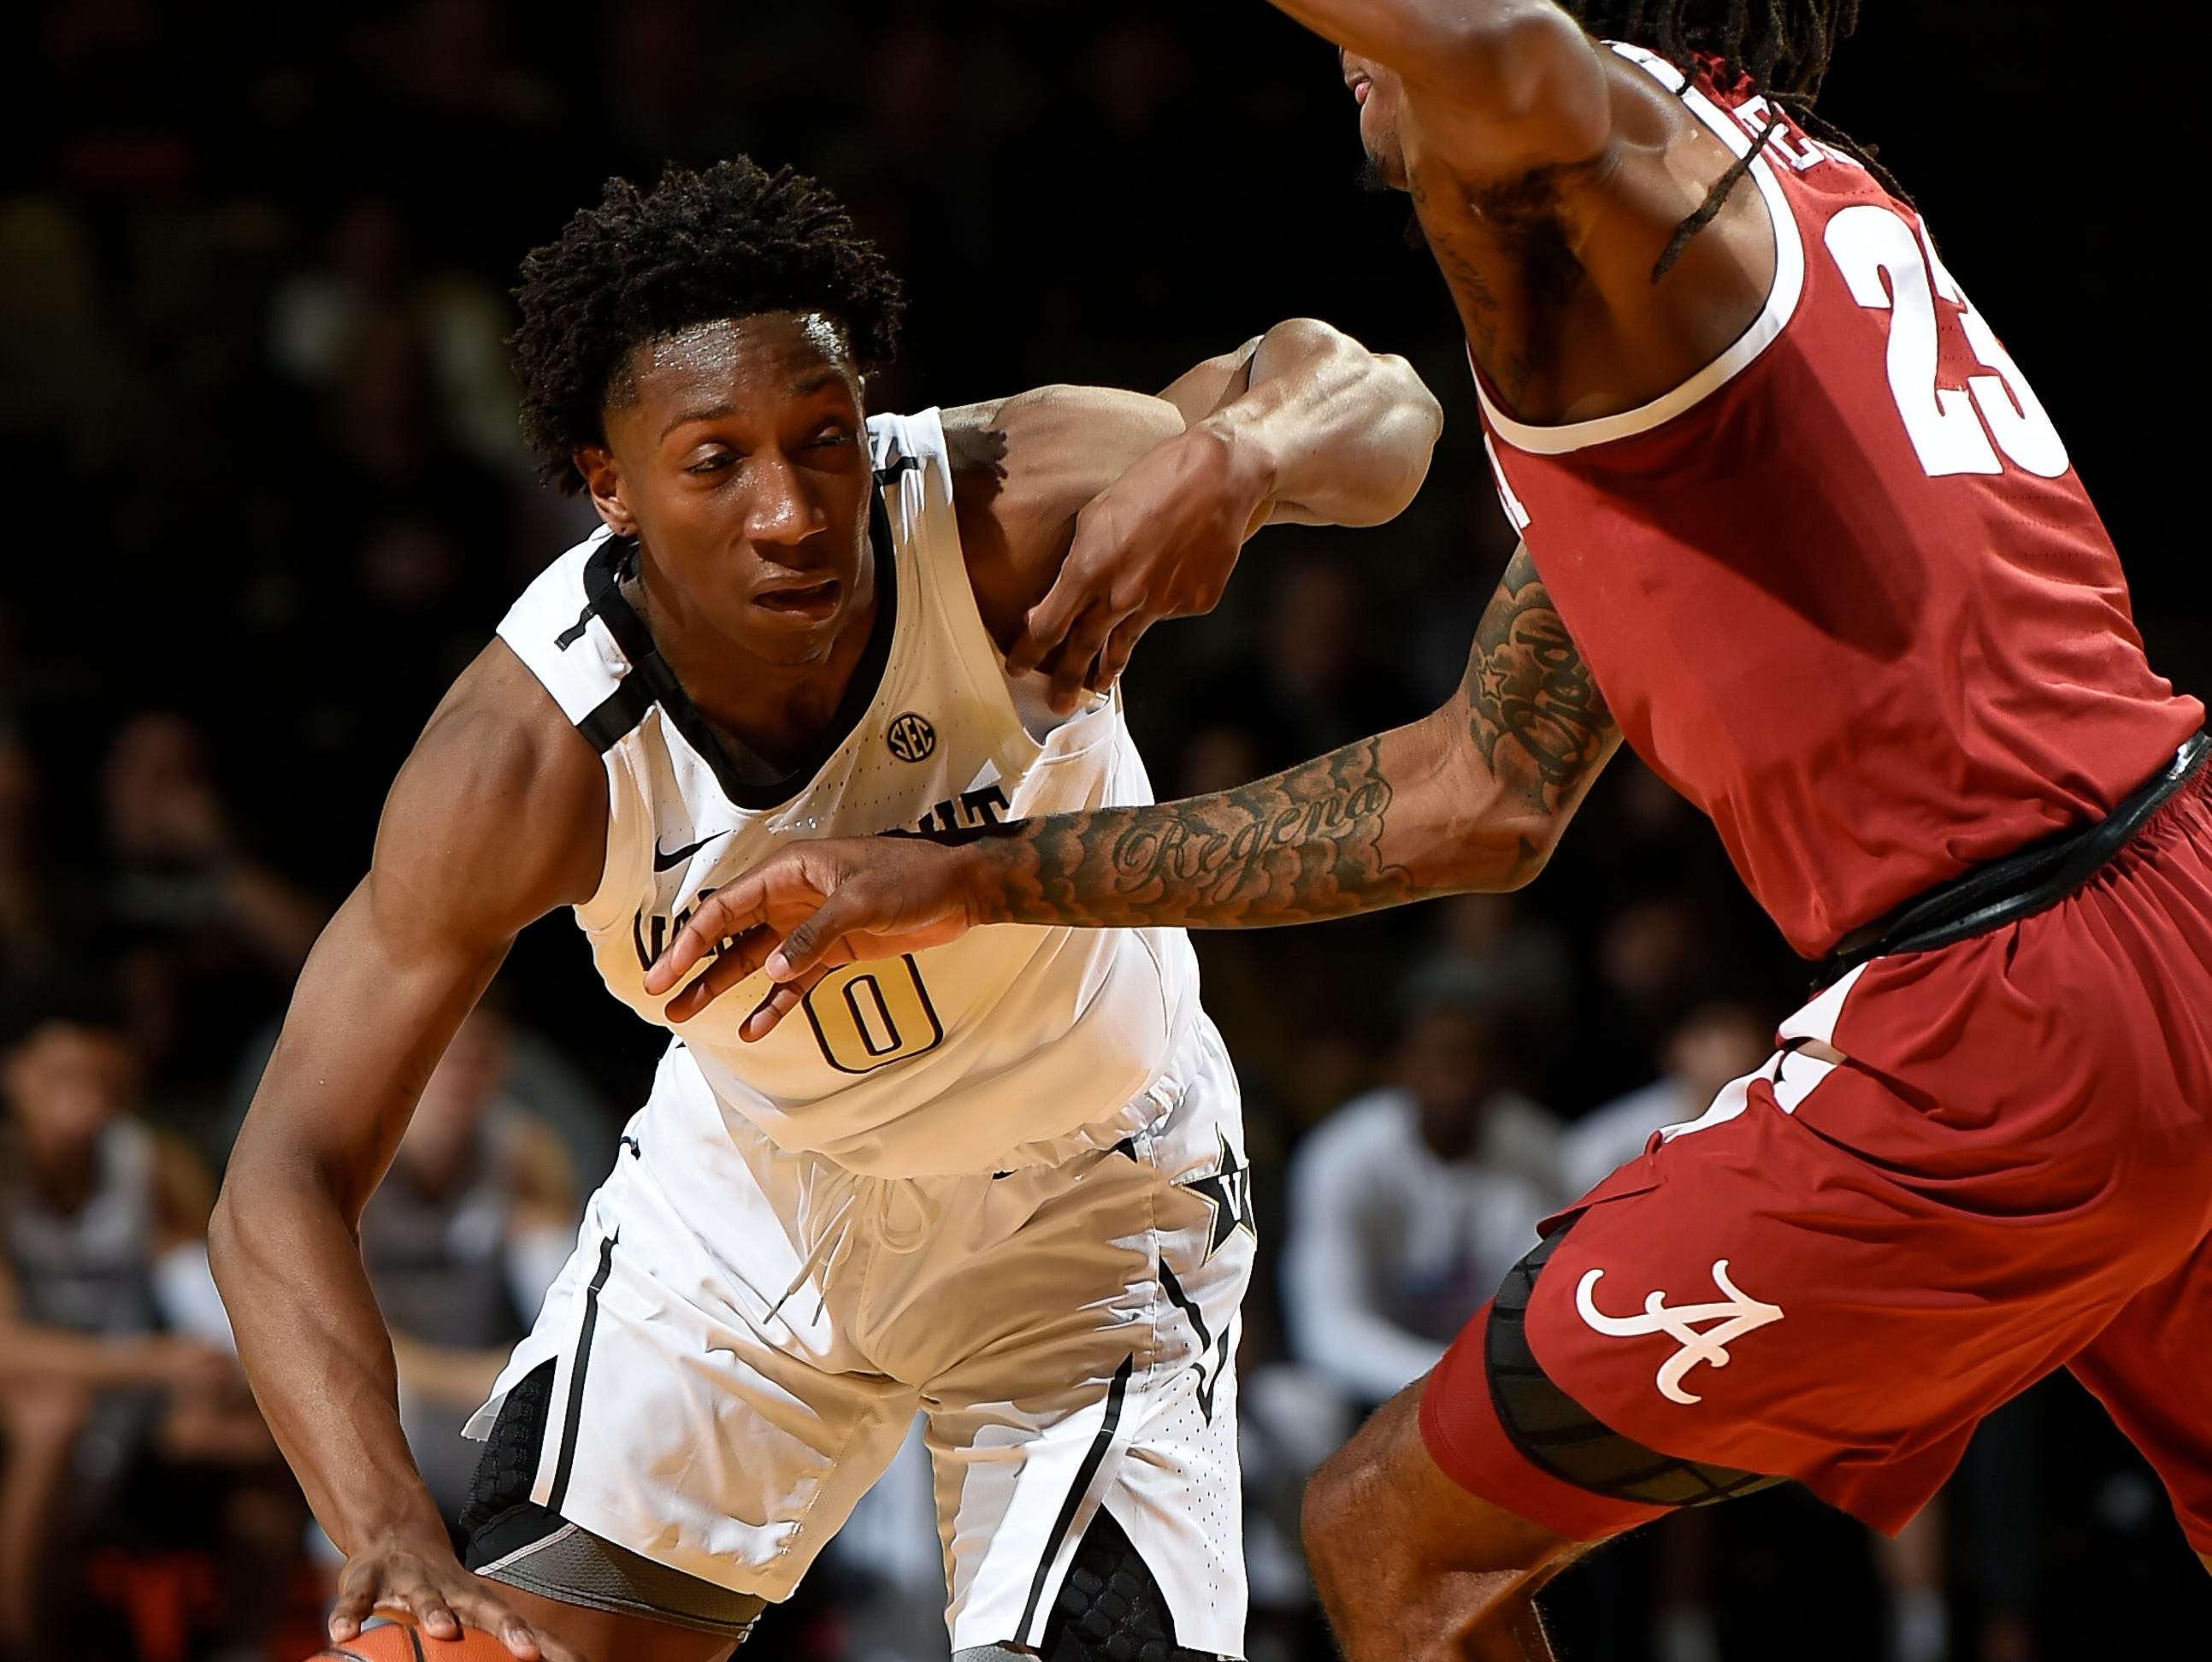 Vanderbilt guard Saben Lee (0) drives past Alabama guard John Petty (23) during the first half at Memorial Gym Saturday Feb. 9, 2019 in Nashville, Tenn.